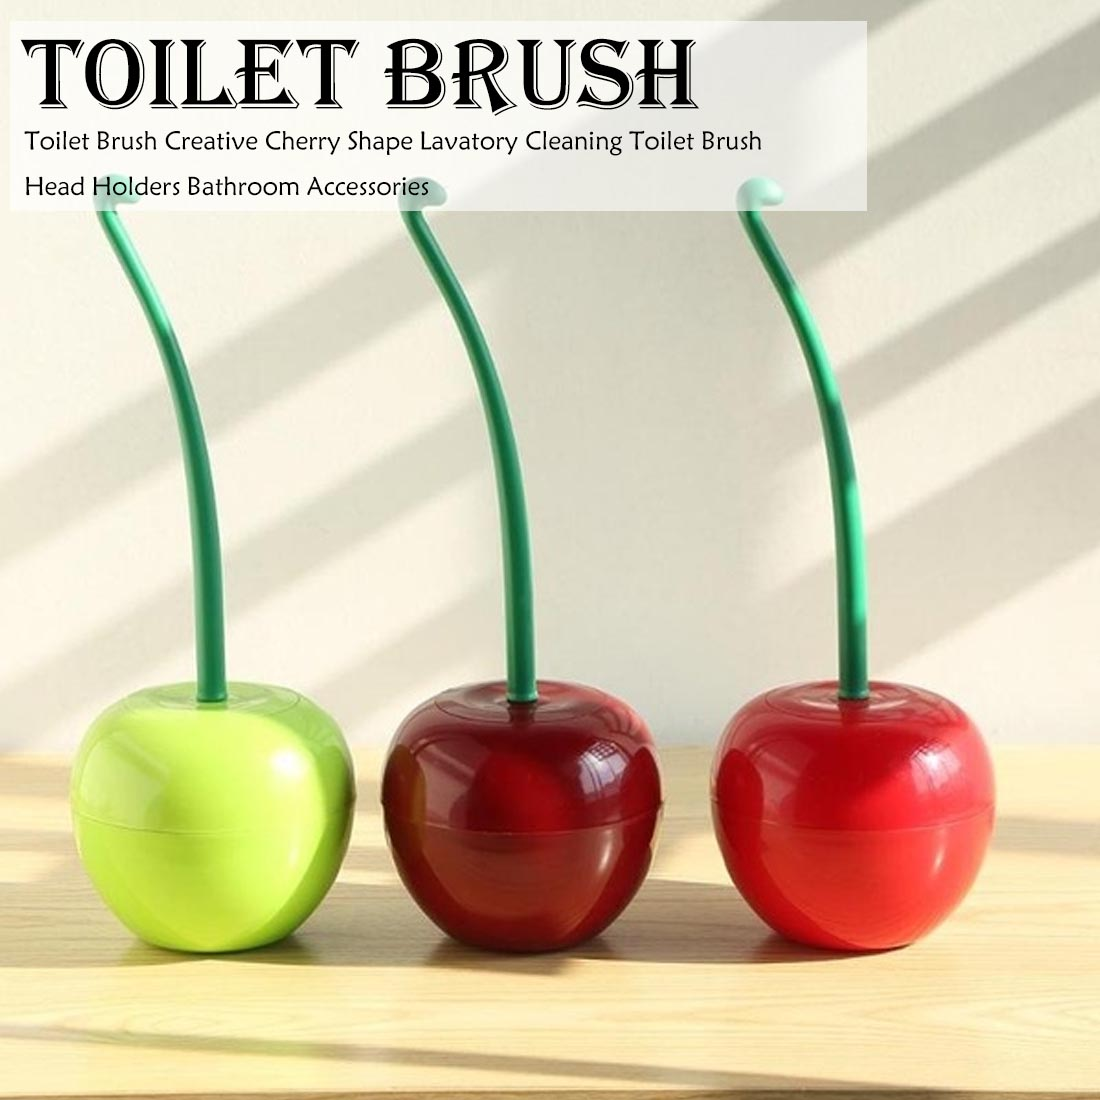 Bathroom Toilet Brush Creative Lovely Cherry Shape Lavatory Brush Toilet Brush And Holder Set Move Cherry 380x130mm